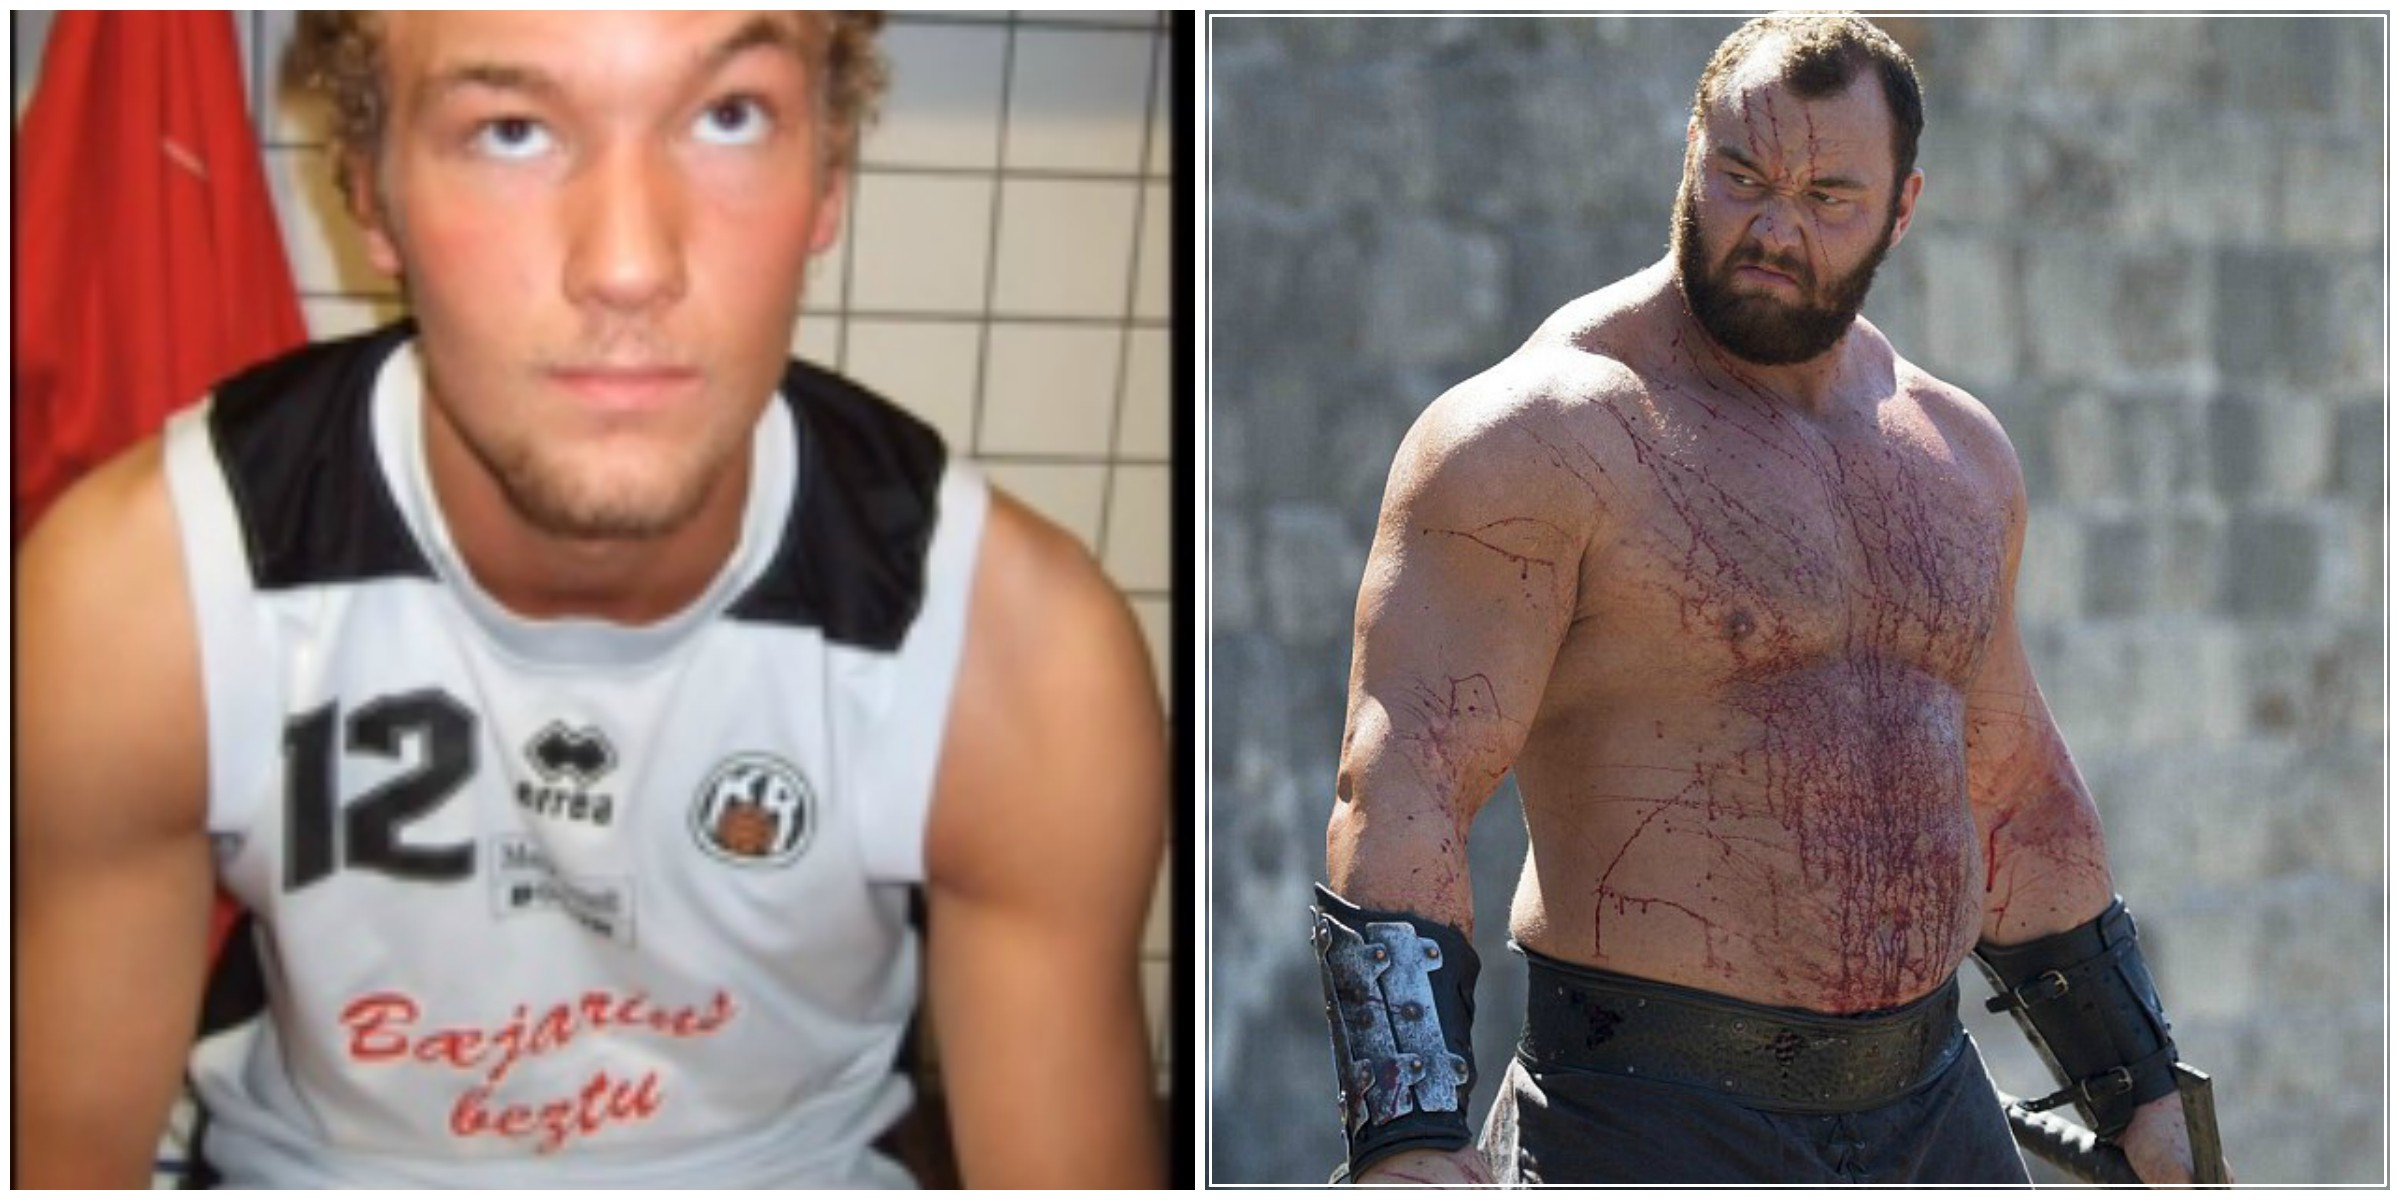 The Mountain from Game Of Thrones has revealed his HUGE